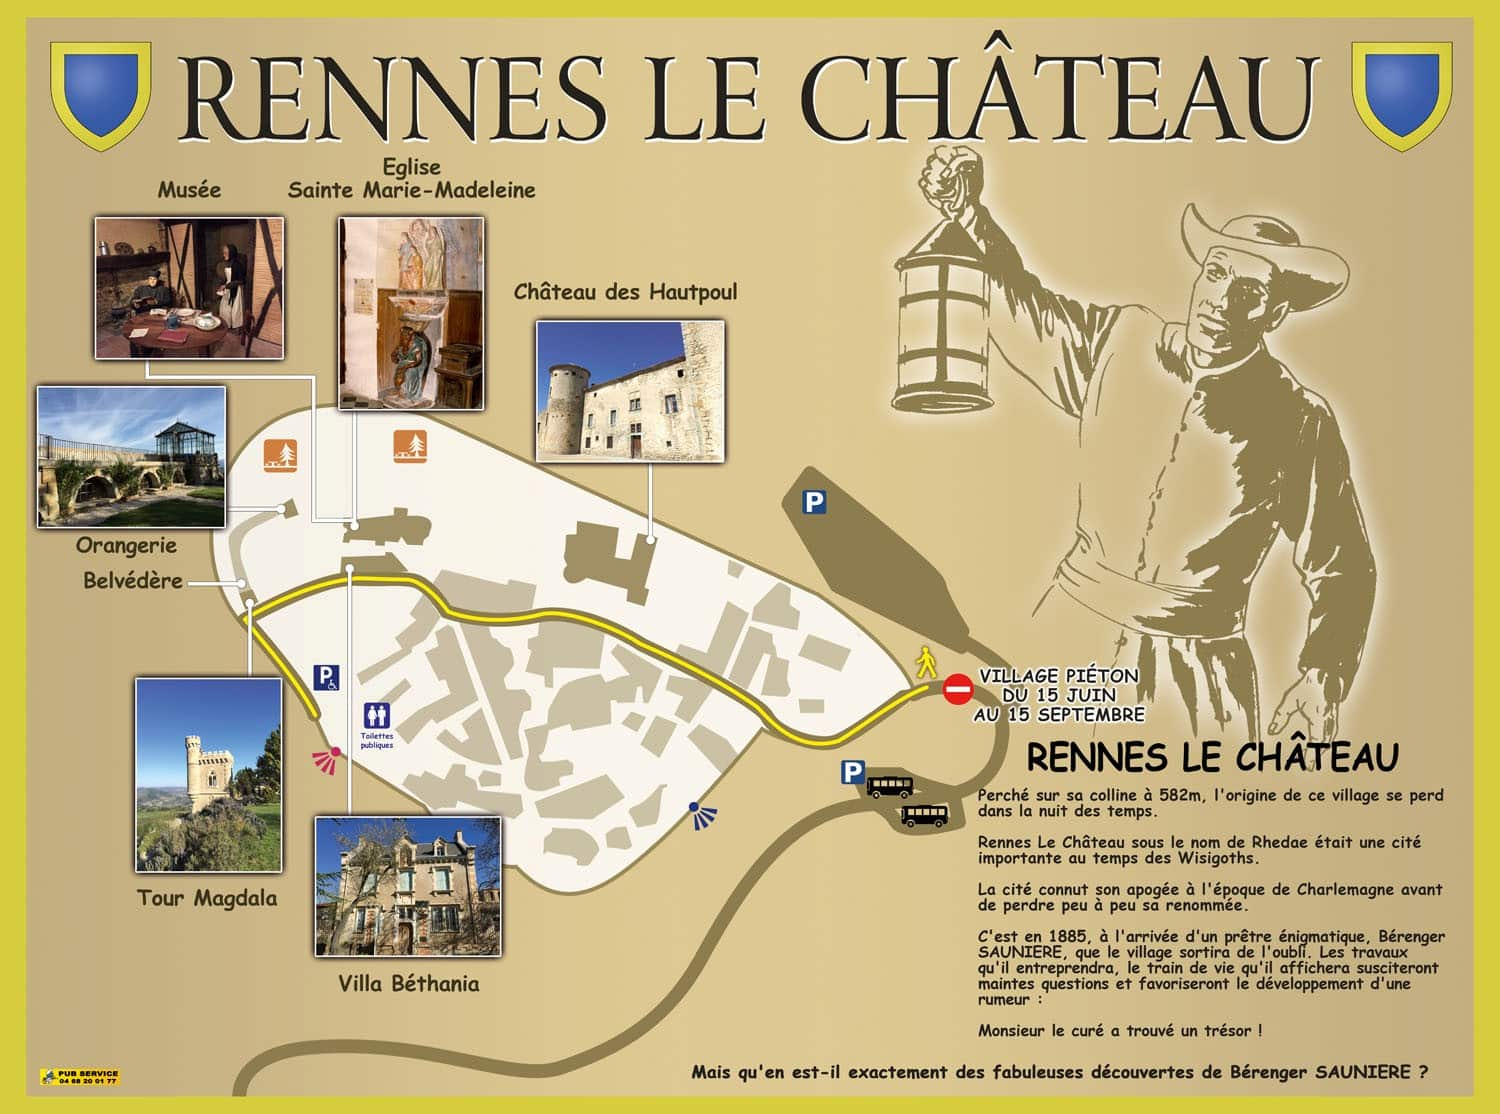 Rennes le chateau map